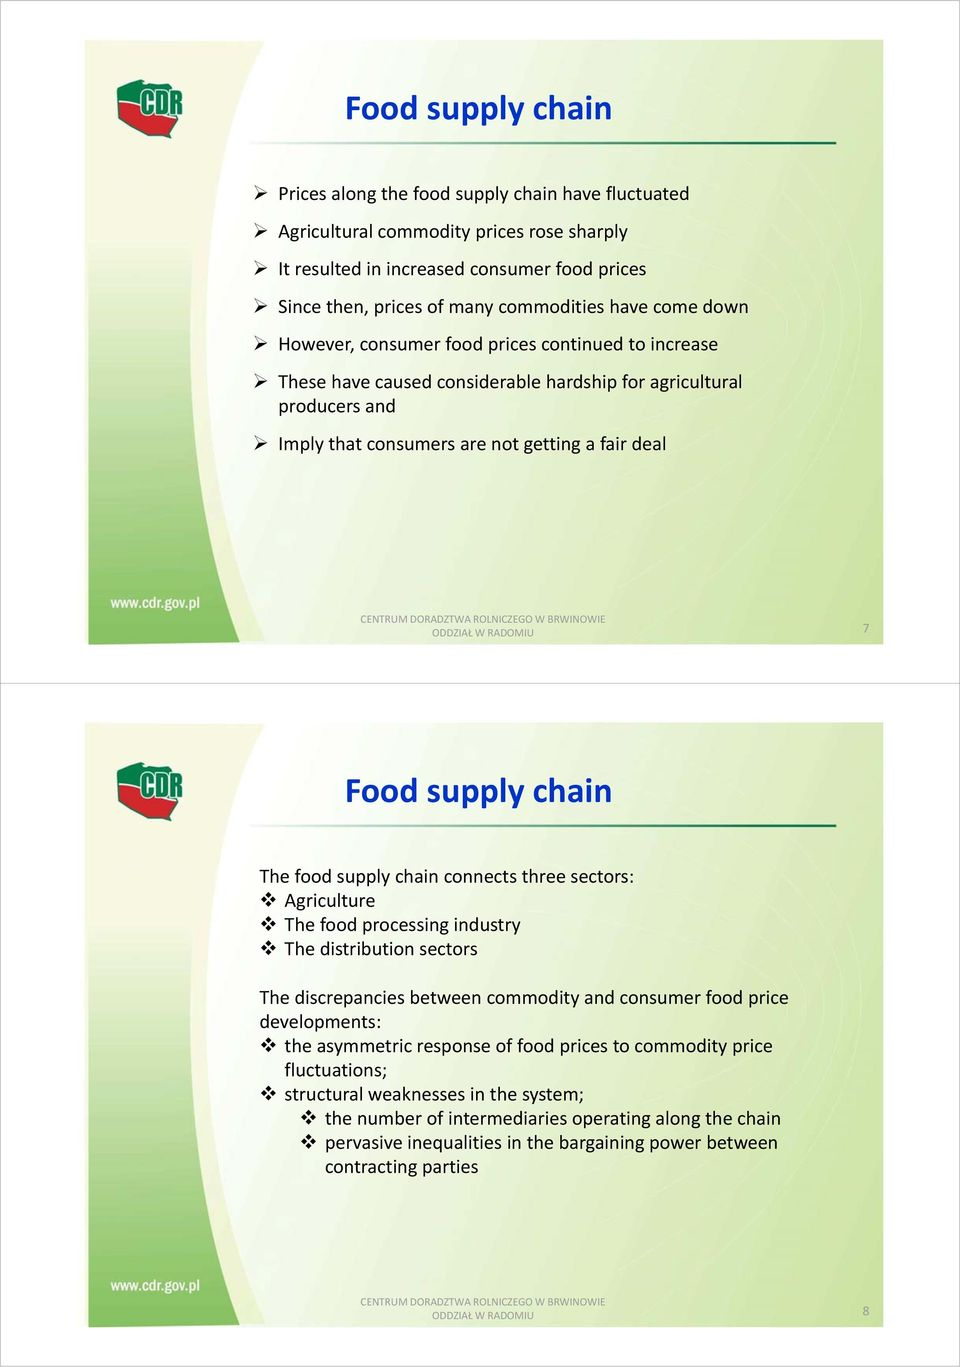 RADOMIU 7 Food supply chain The food supply chain connects three sectors: Agriculture The food processing industry The distribution sectors The discrepancies between commodity and consumer food price